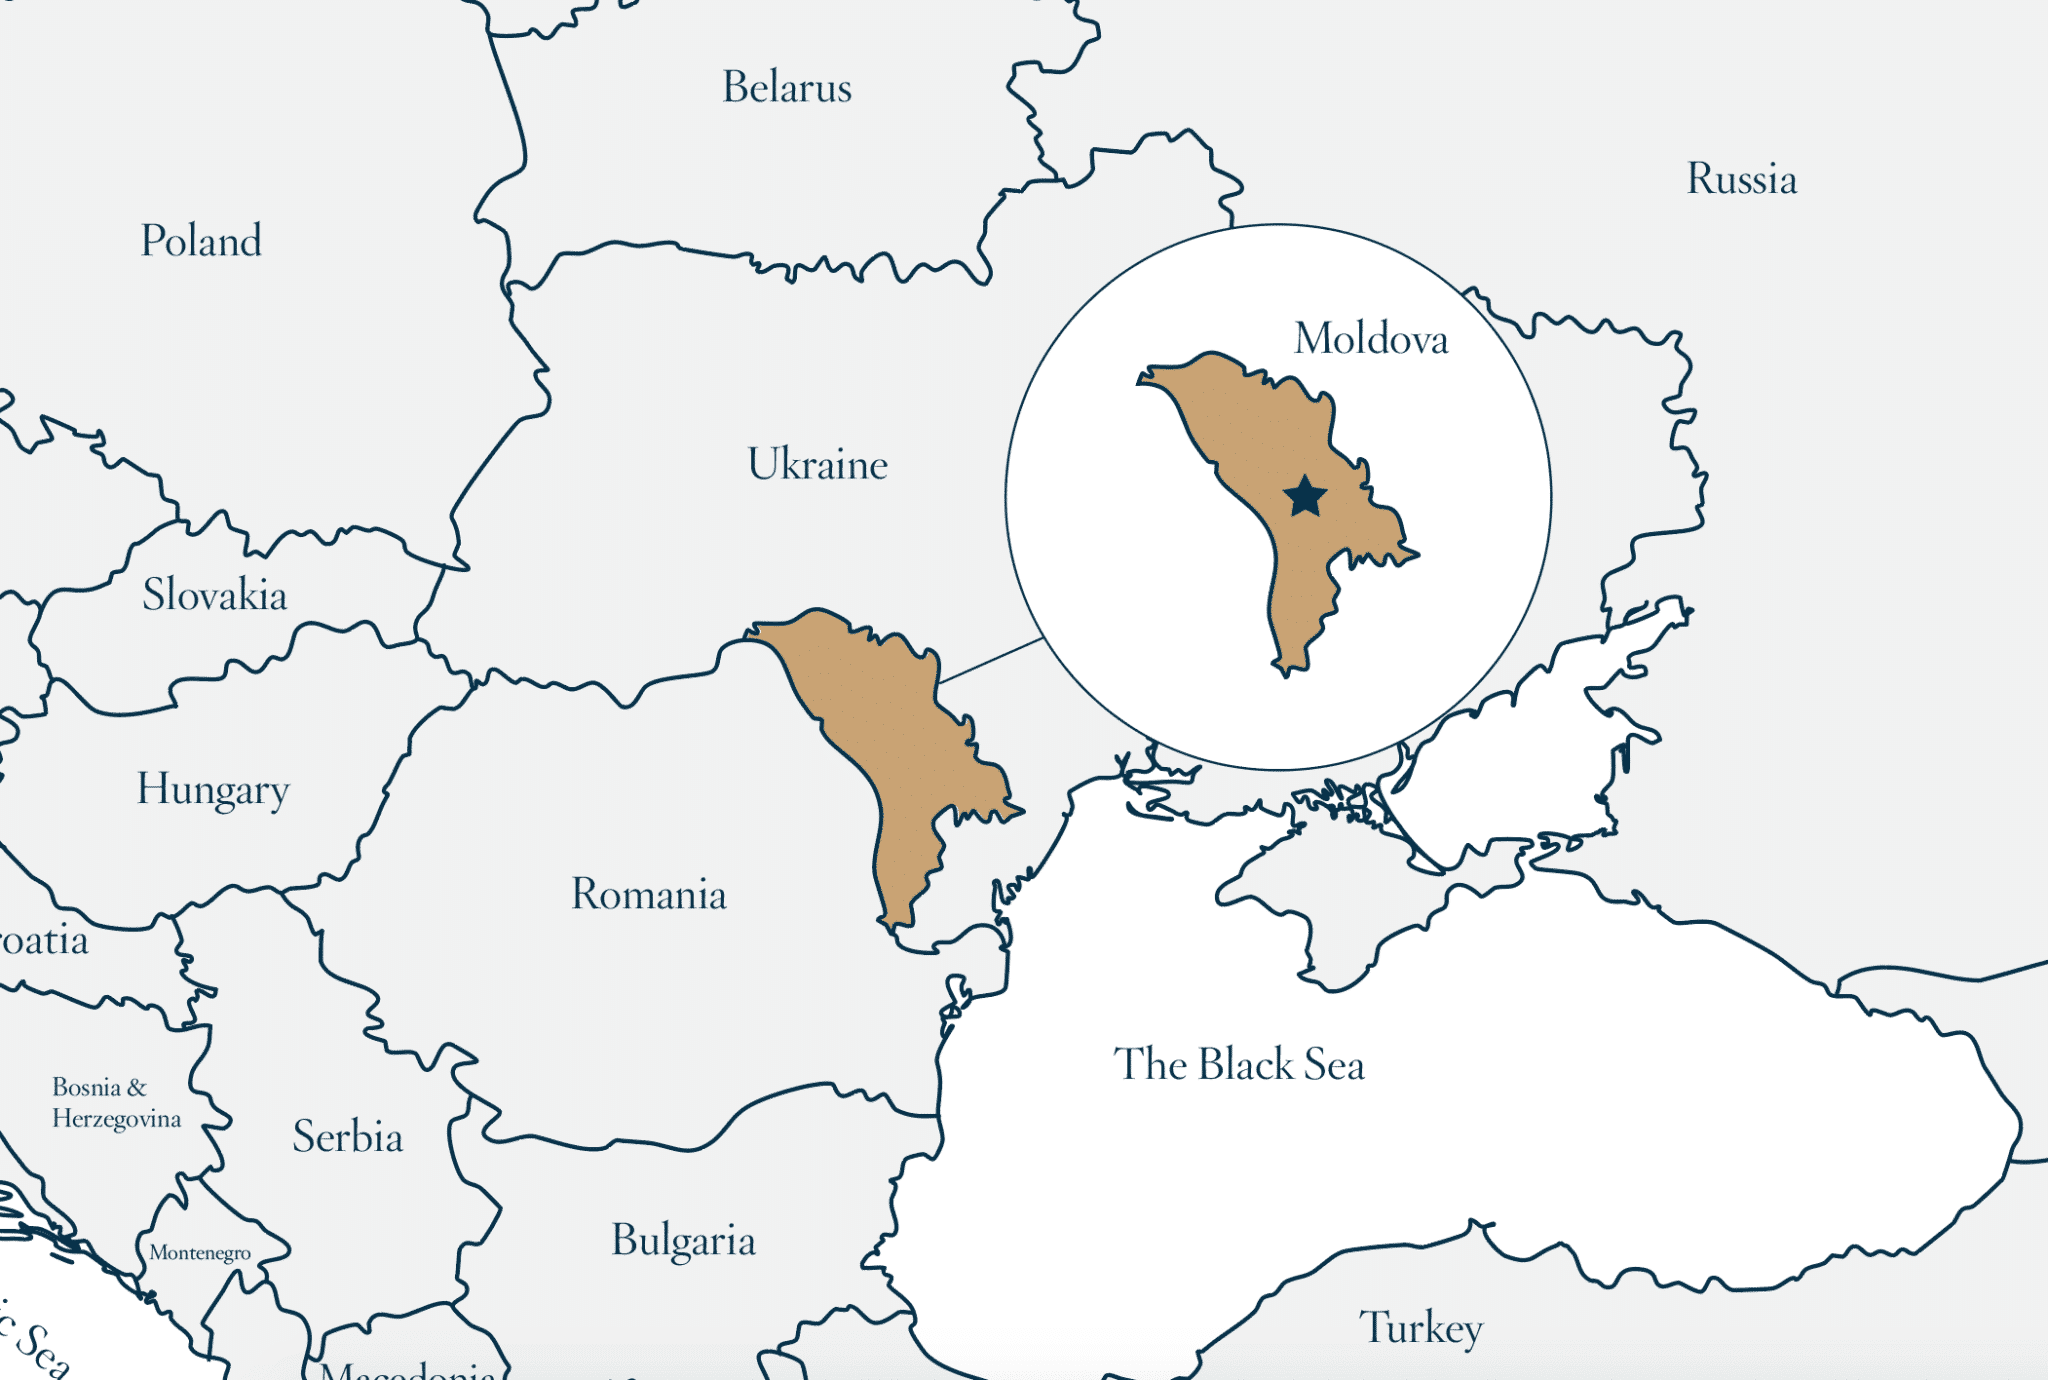 Where is Moldova? - Map of Moldova